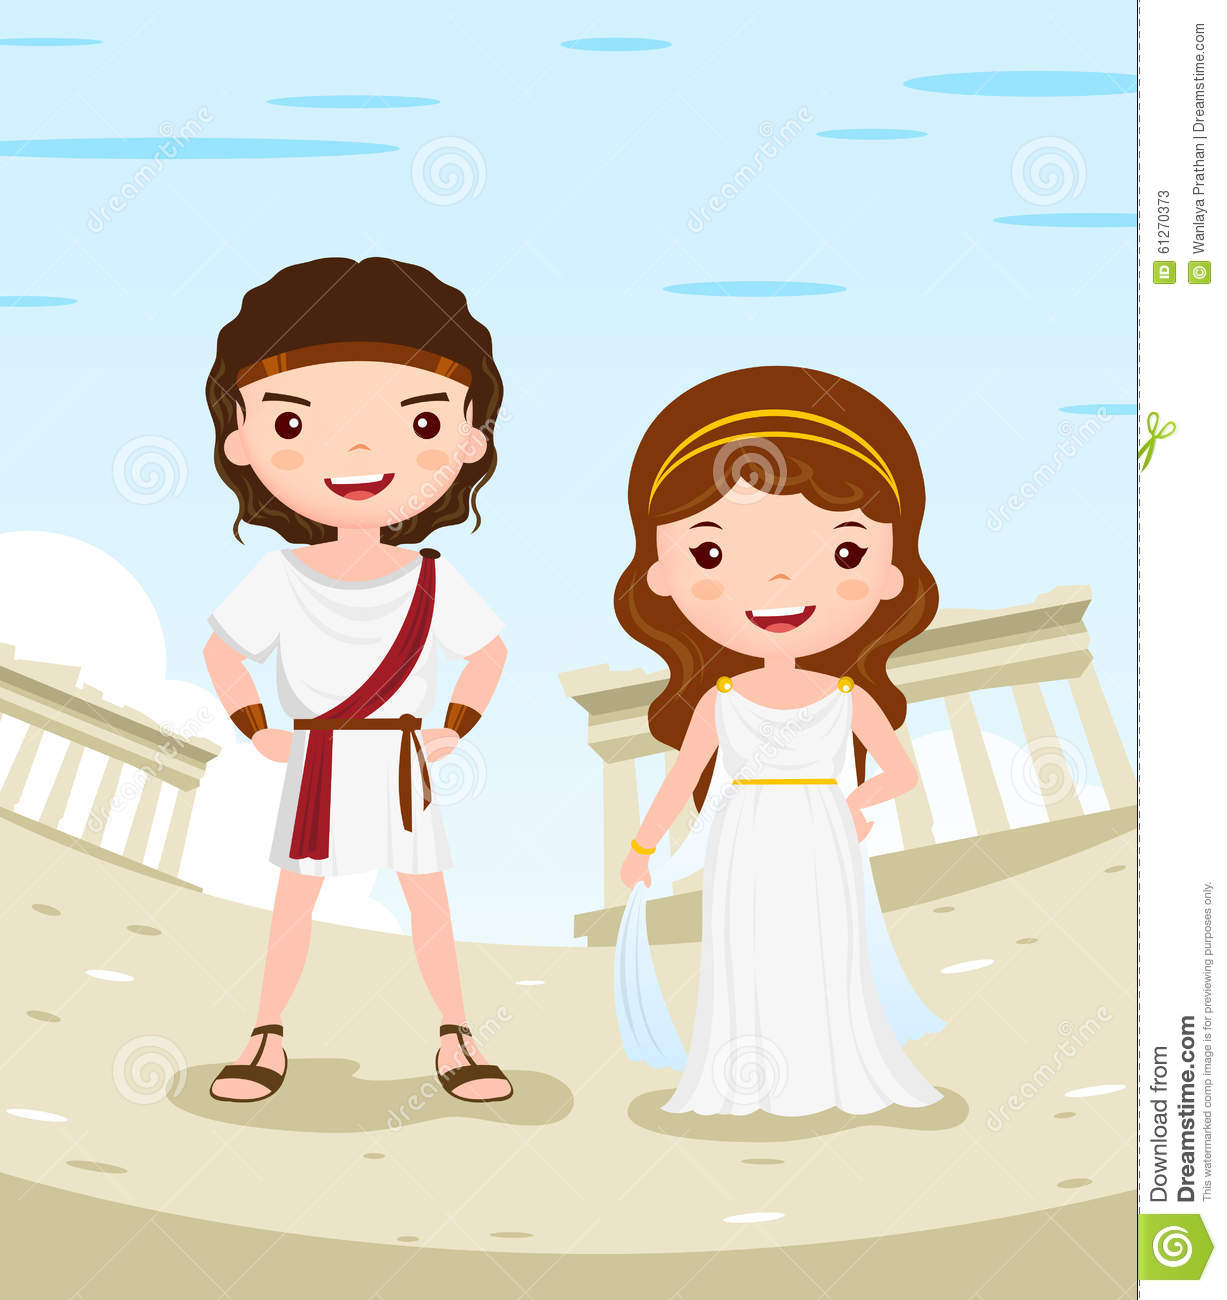 Greece costume history cartoon character couple in the ancient city